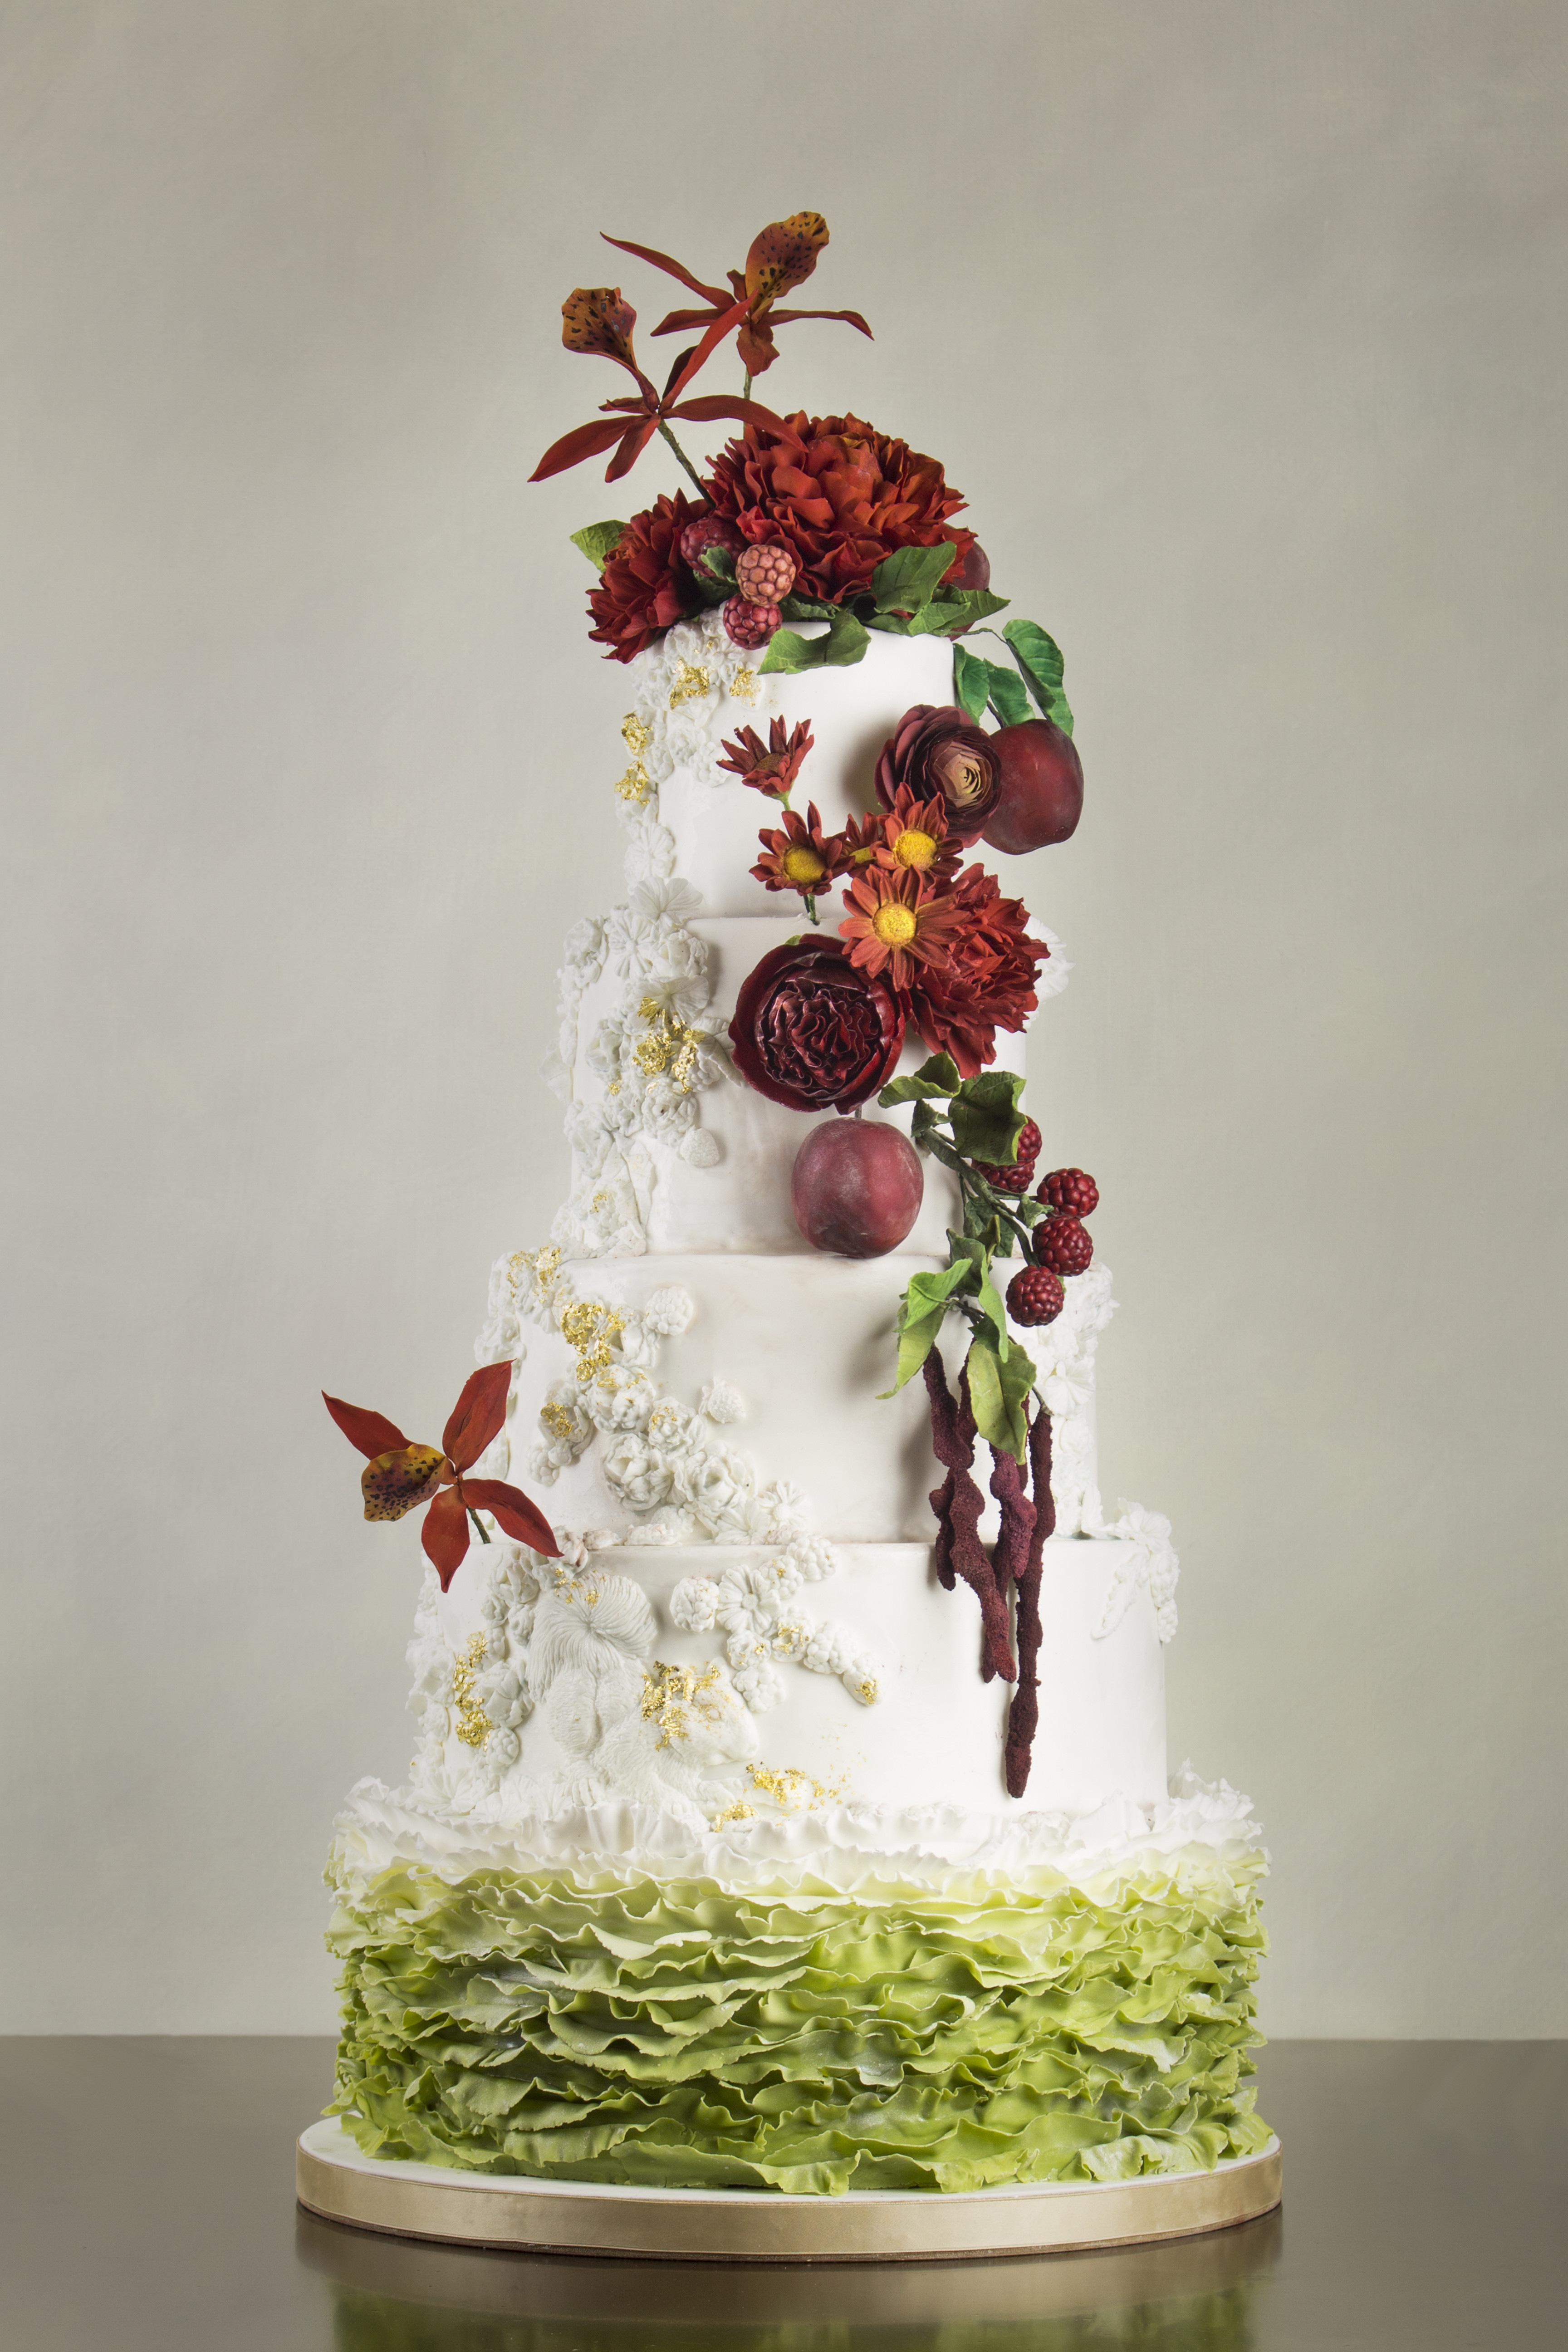 White wedding bas relief wedding cake with green ombre ruffles and dark red sugar flowers